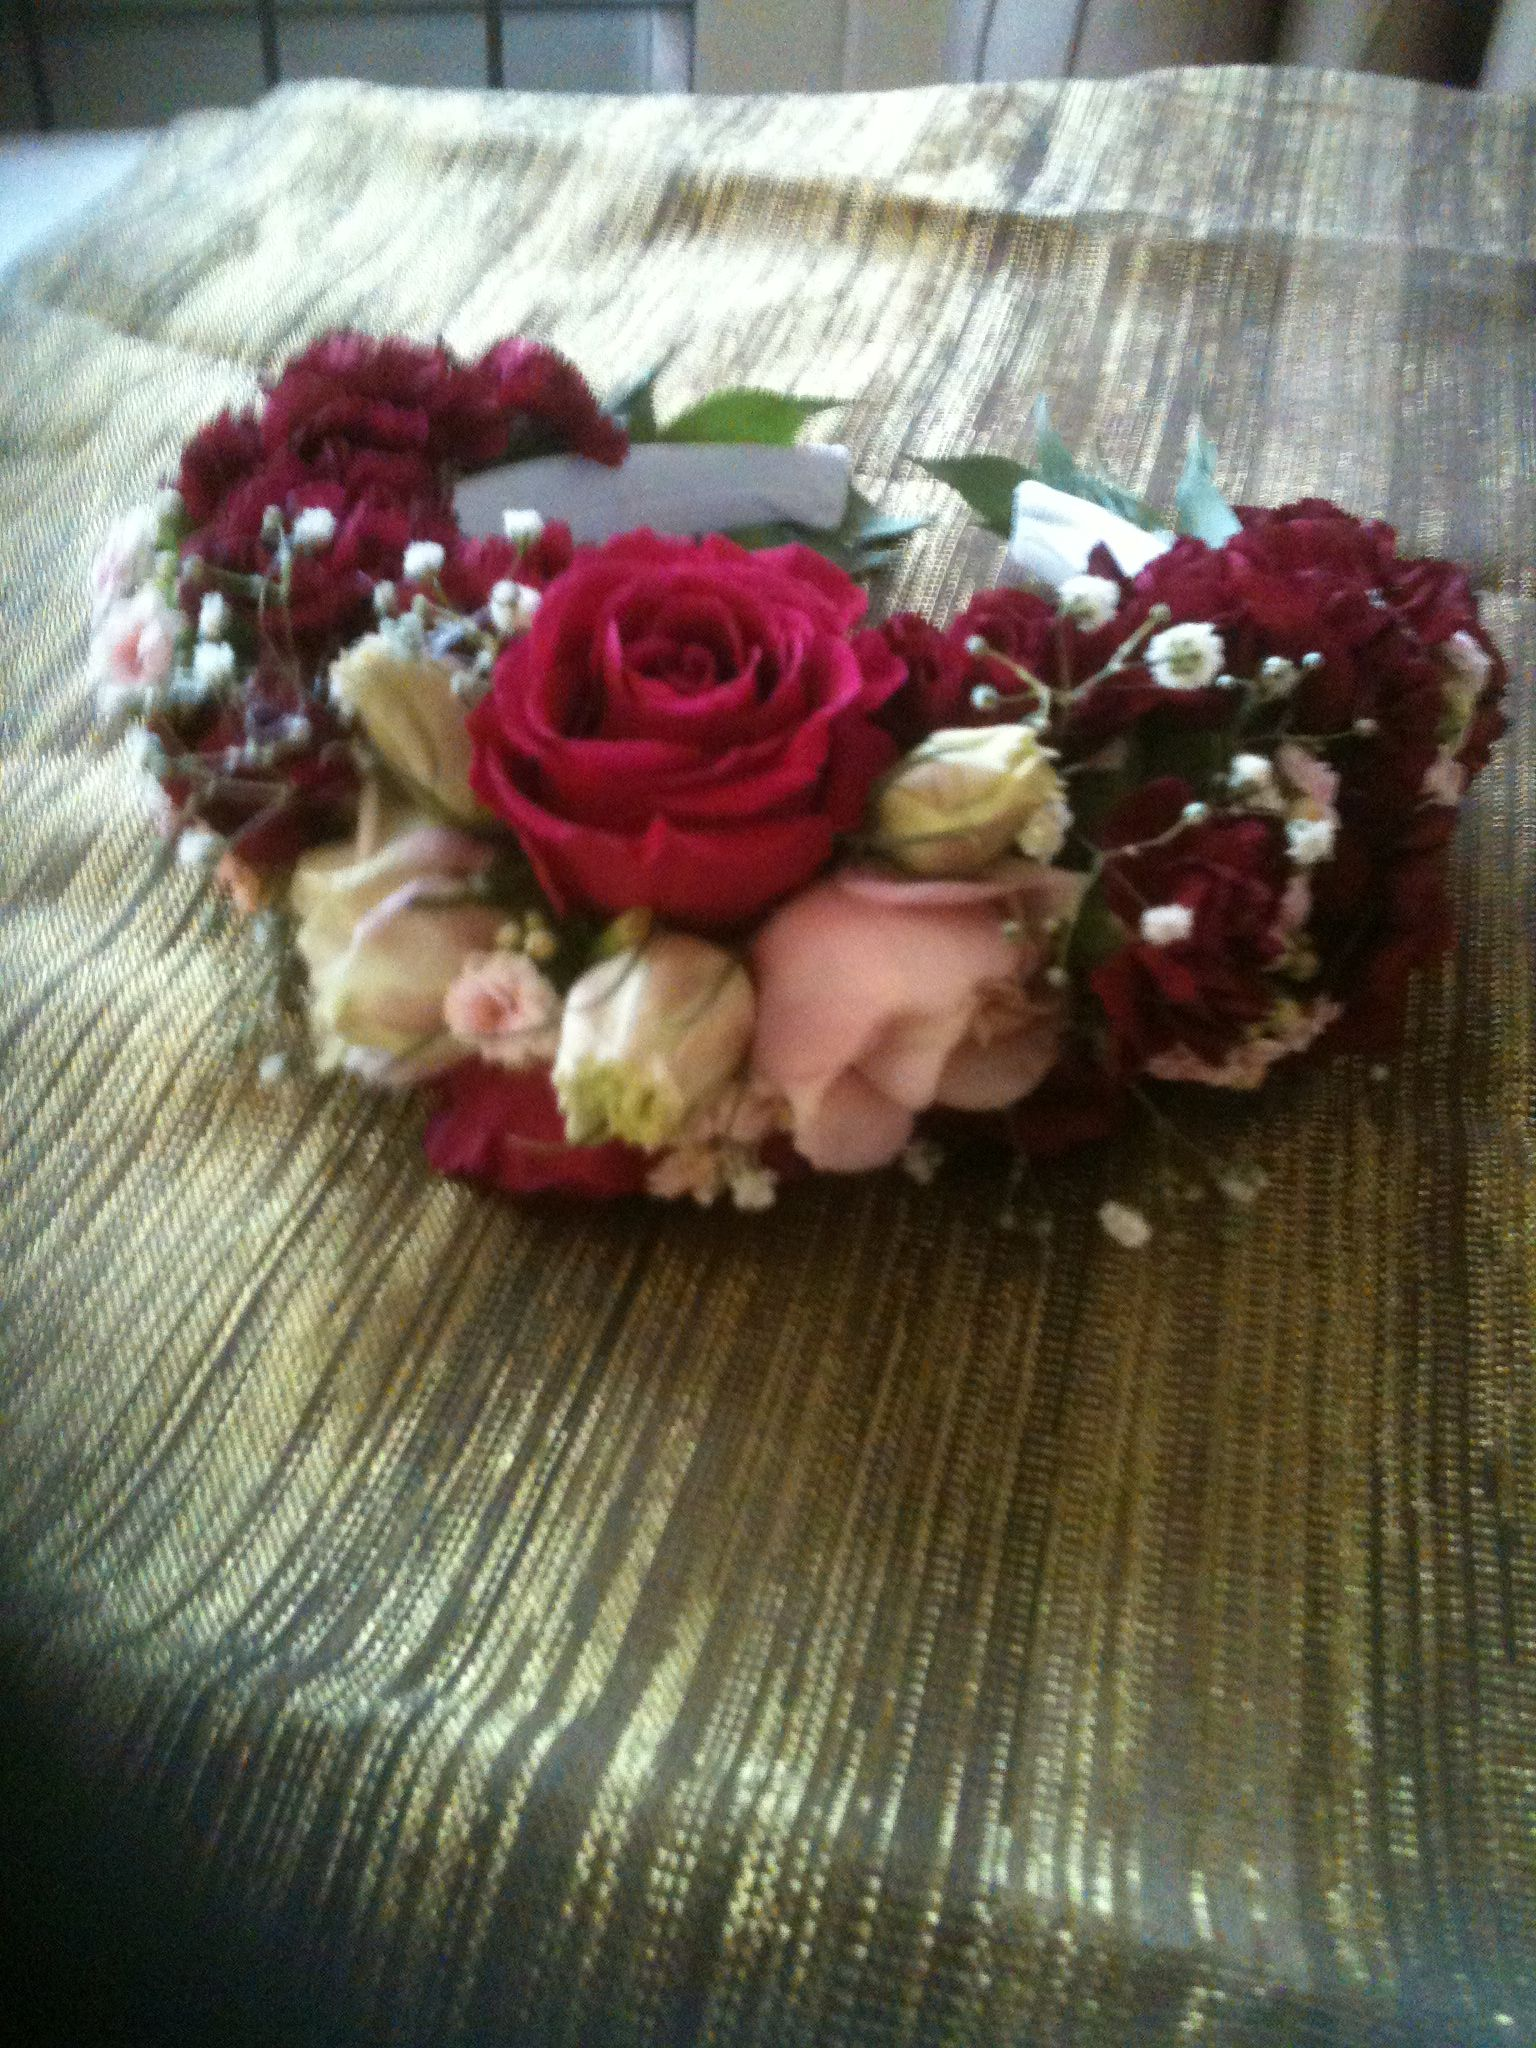 A floral headress using fresh flowers, roses gypsophila, carnations in deep pinks and pale pinks.